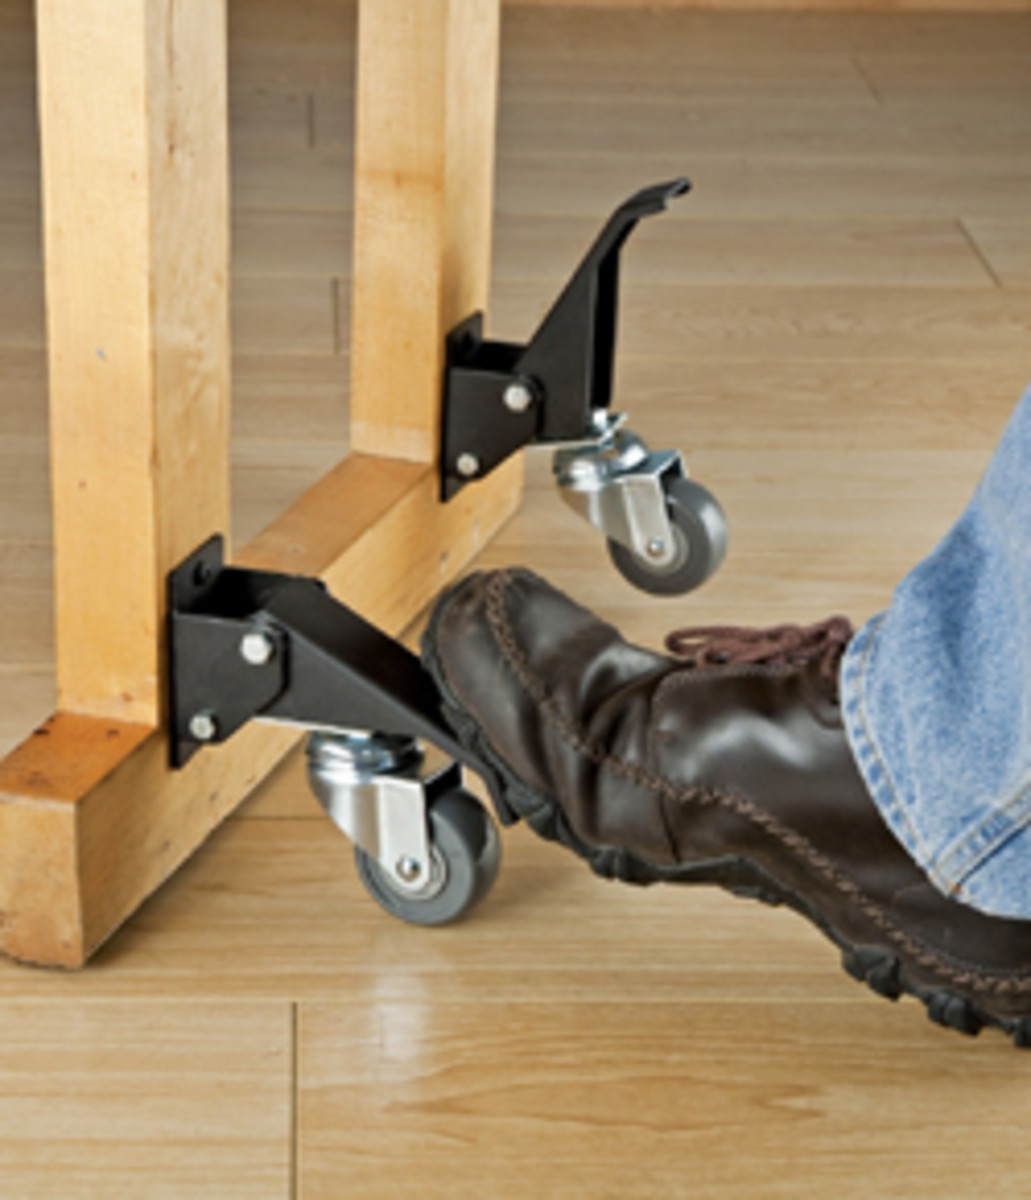 Rockler offers caster kit with onetouch lift mechanism